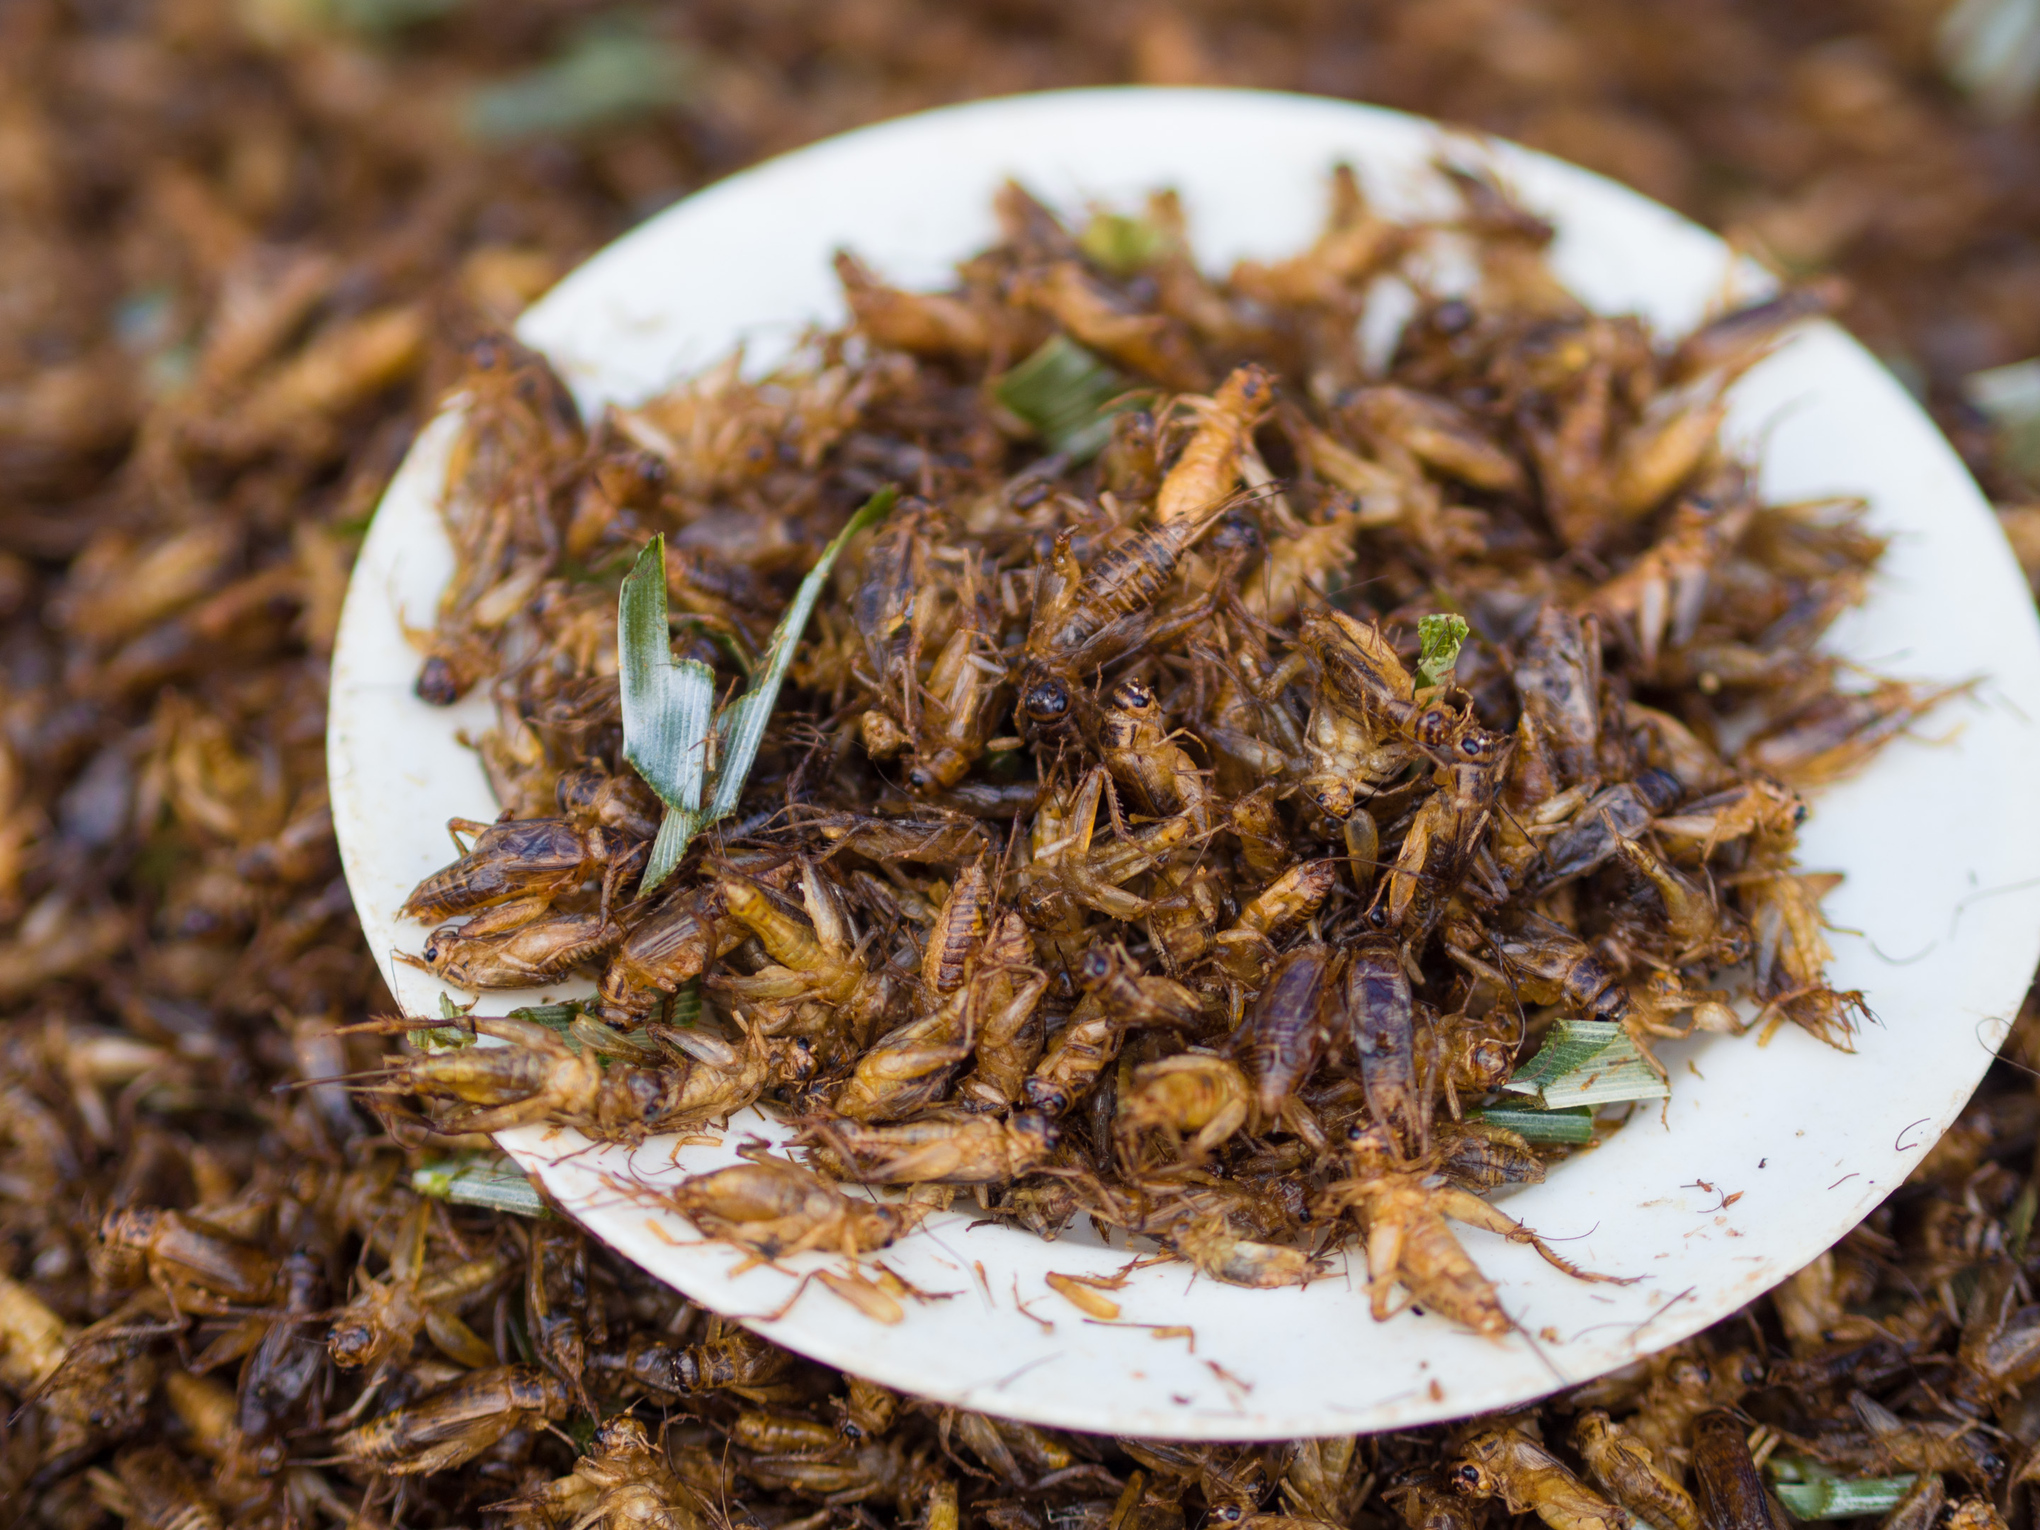 6 reasons you should consider eating insects - Vox